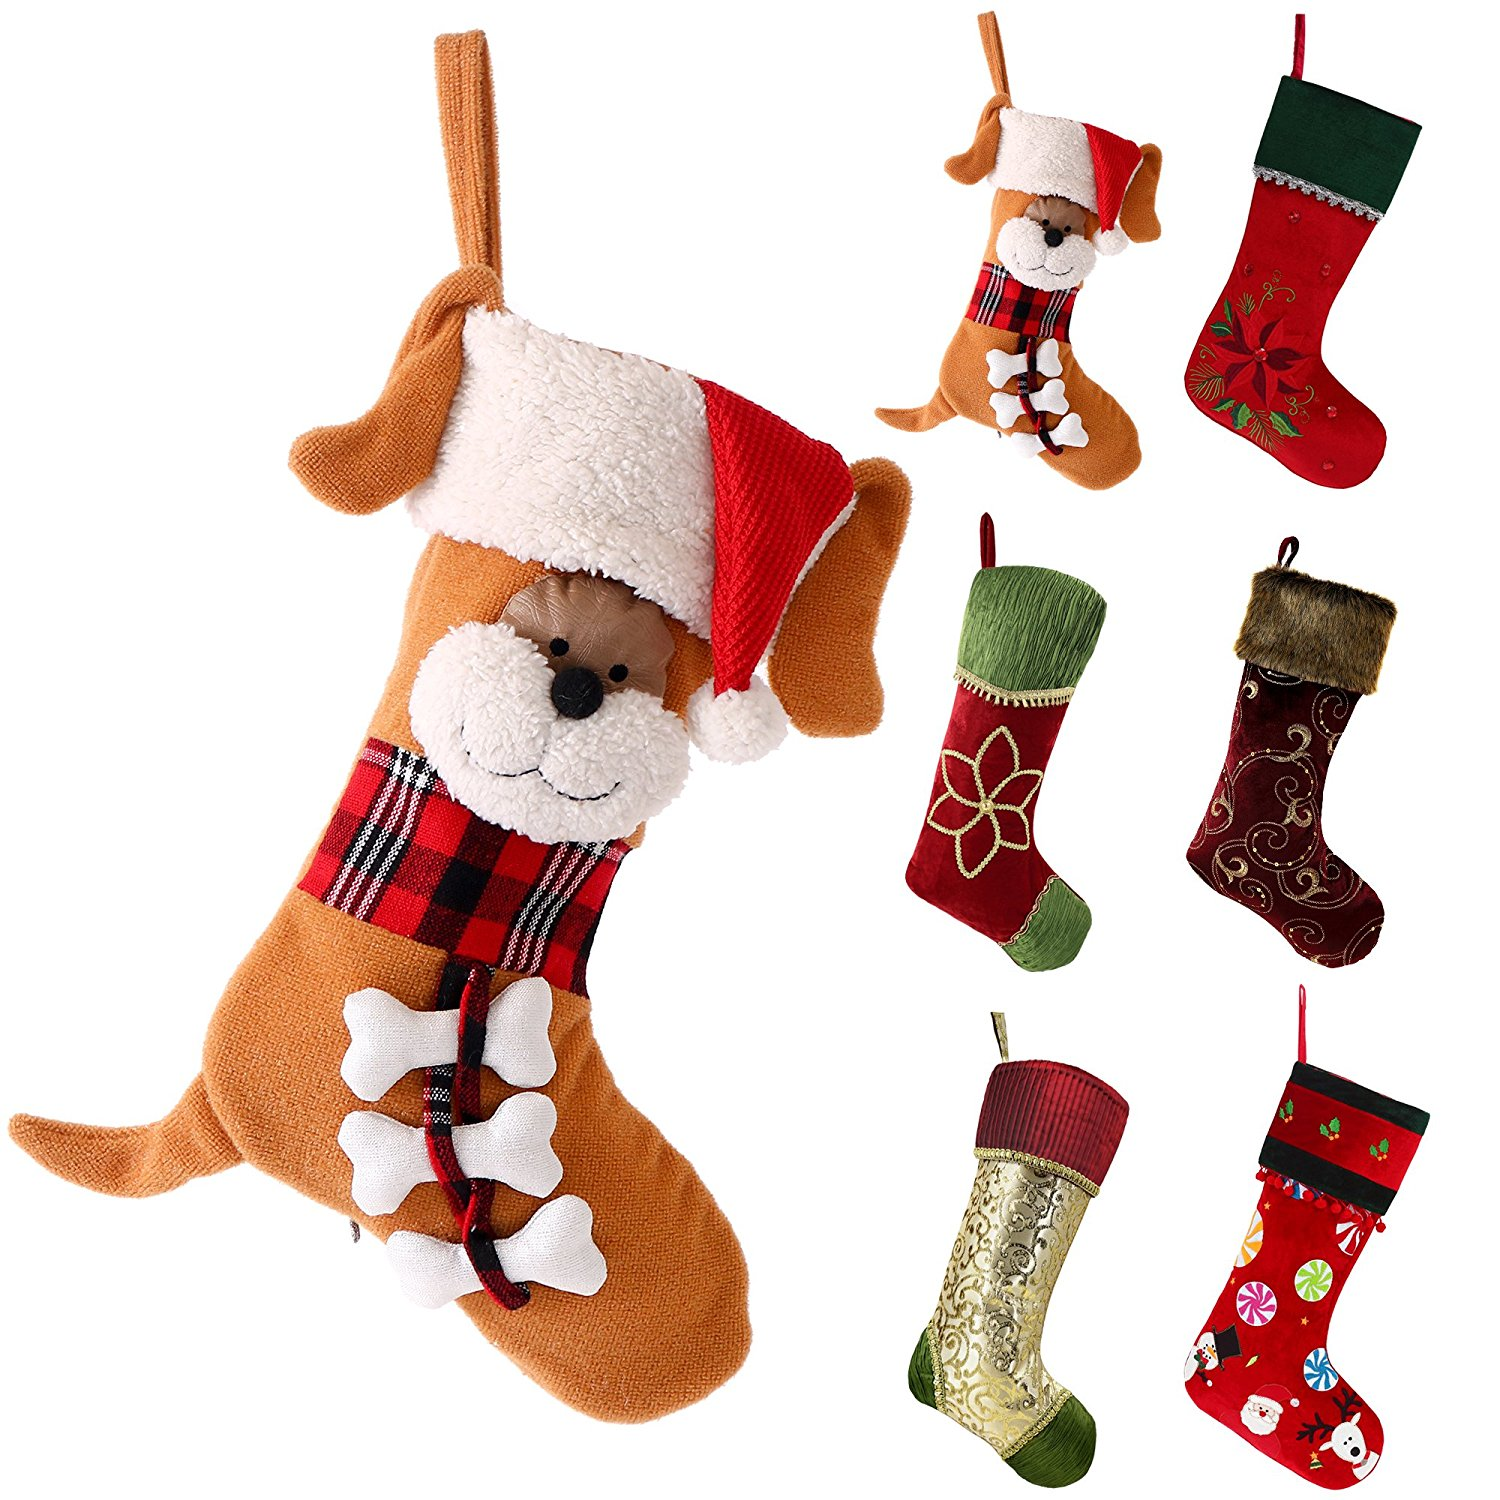 21 Valery Madelyn 18 Inch Joyful Pet Christmas Stocking